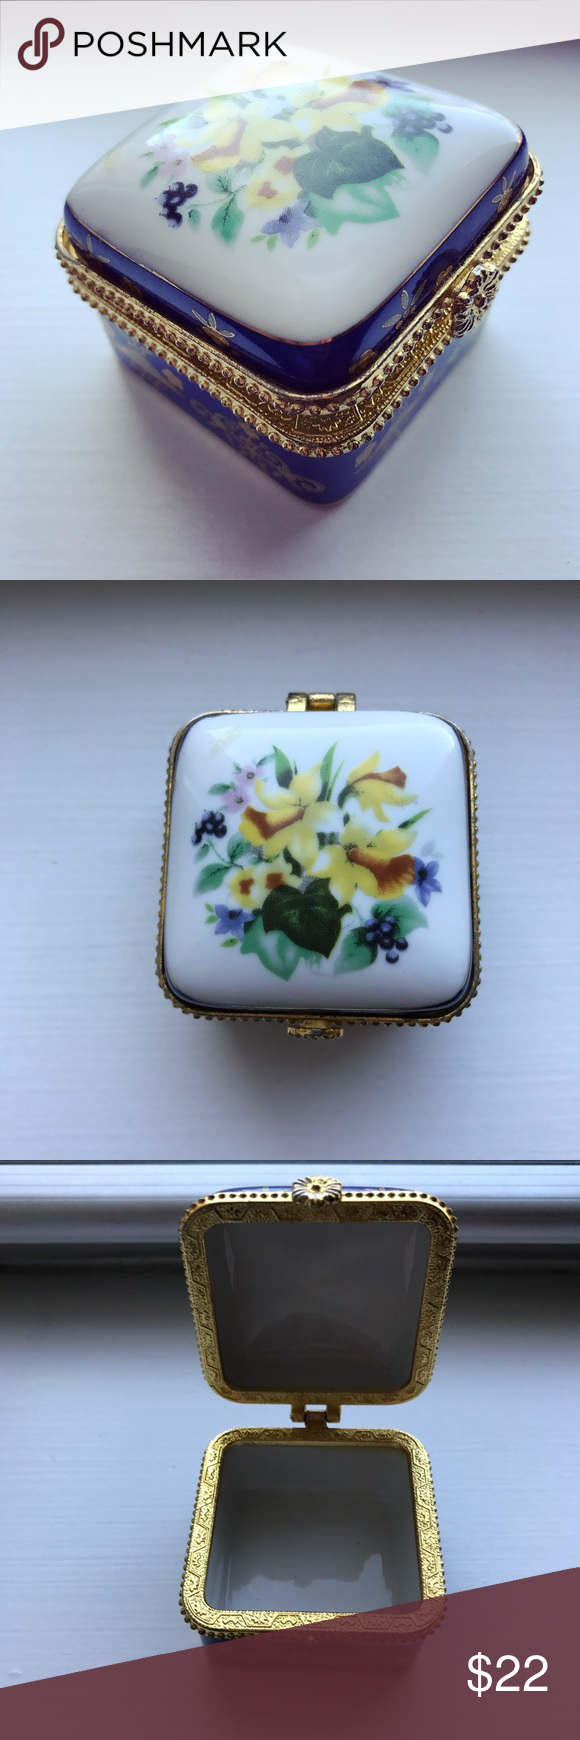 Vintage gold & blue floral jewelry / pill box Vintage white ceramic jewelry / pill box with gold tone trimming and hardware (clasp and hinge). The box is square with rounded edges, and has a rounded top that is white with a floral pattern of yellow, green, pink, and purple. The sides of the box are blue and have gilded gold ornate designs on them. The inside of the box is white. The box is perfect for holding small items, like earrings or pills. It measures 1.65 inches by 2 inches by 2…